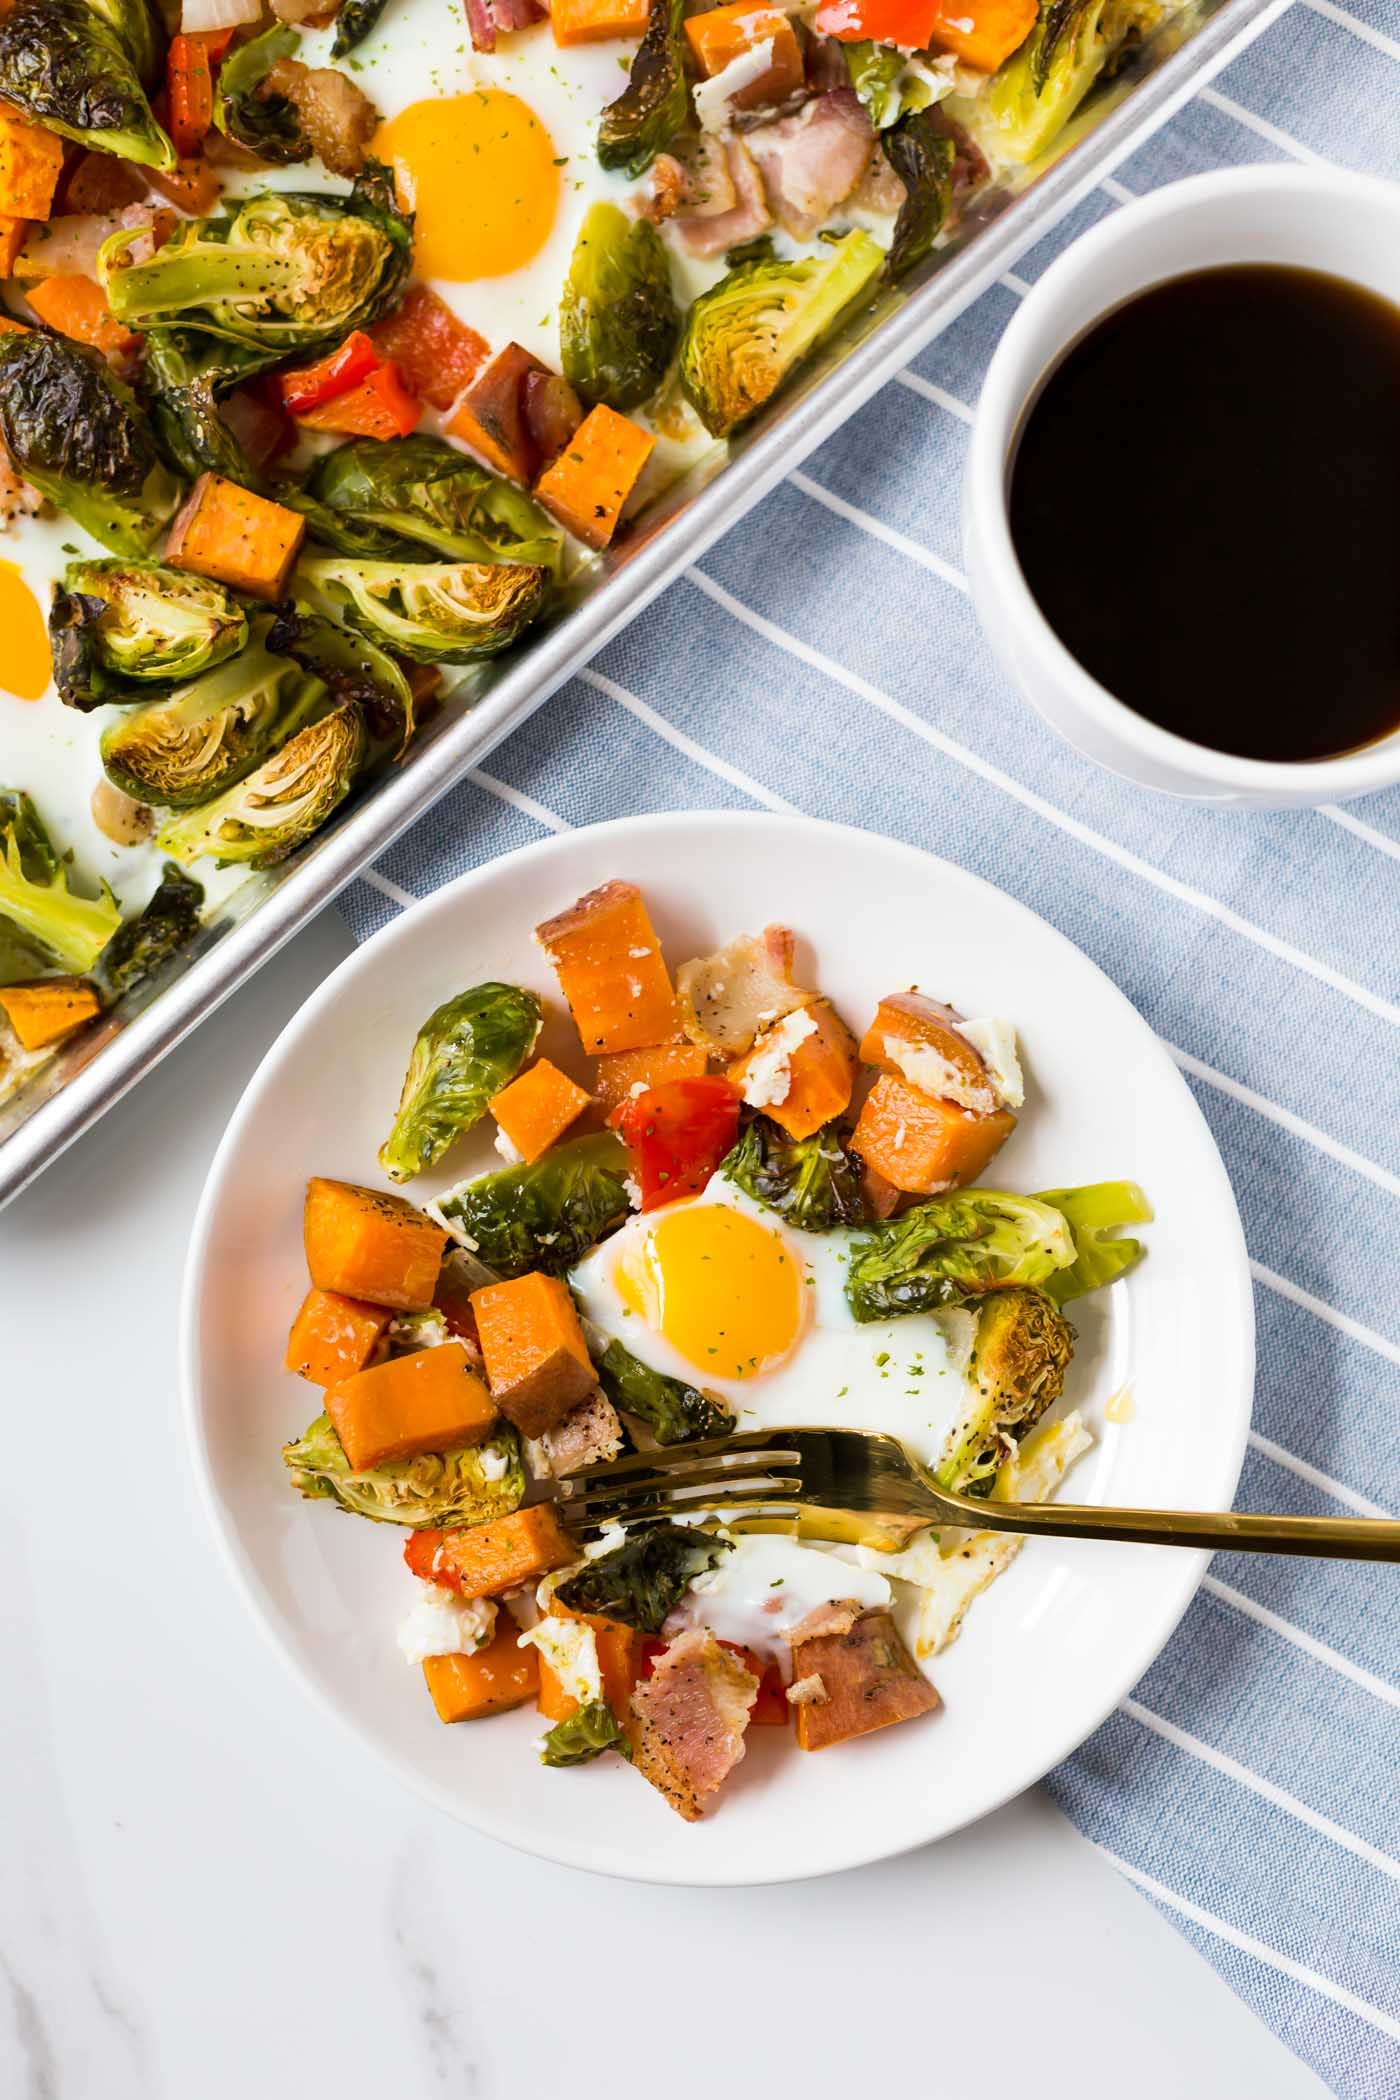 white plate with one egg, brussel sprouts, sweet potato, bacon, and a red bell pepper.